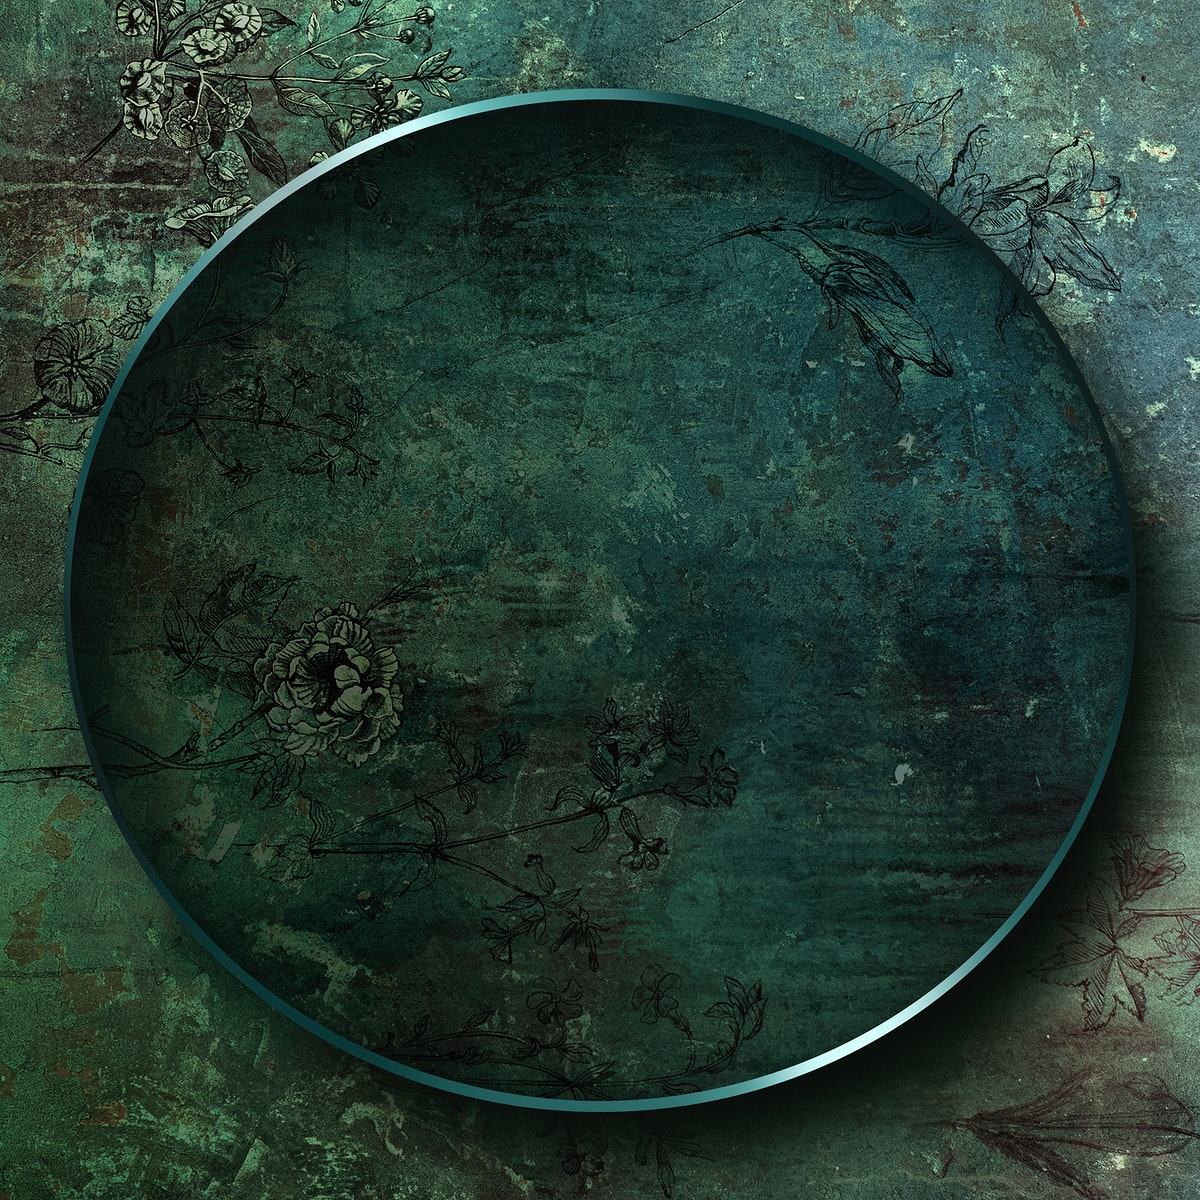 Oval frame on abstract background illustration